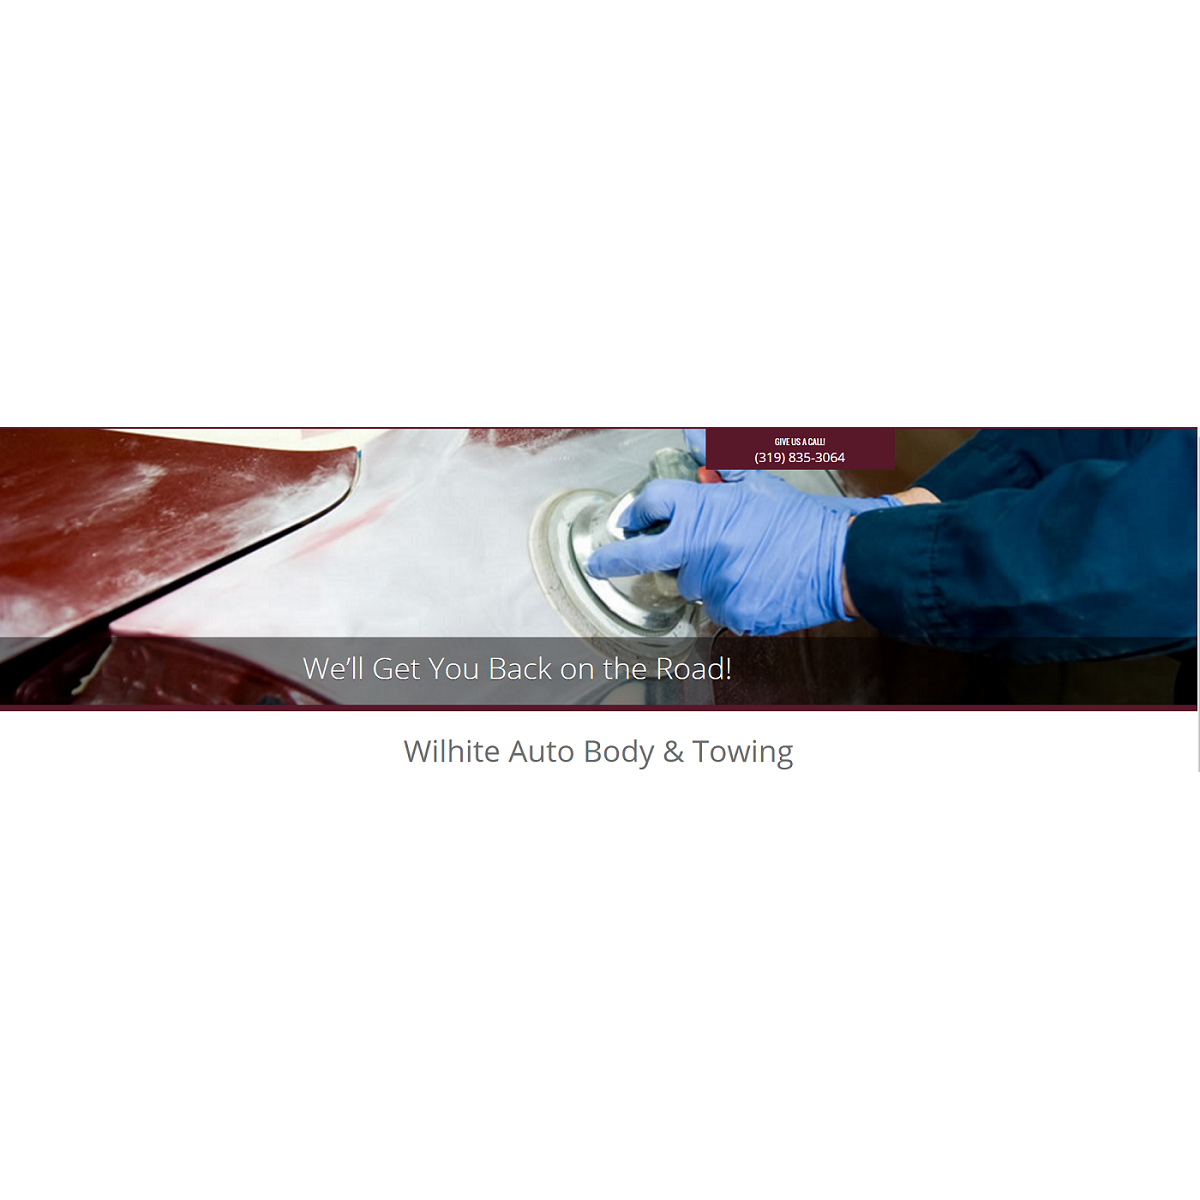 Wilhite Auto Body & Towing - Donnellson, IA 52625 - (319)835-3064   ShowMeLocal.com